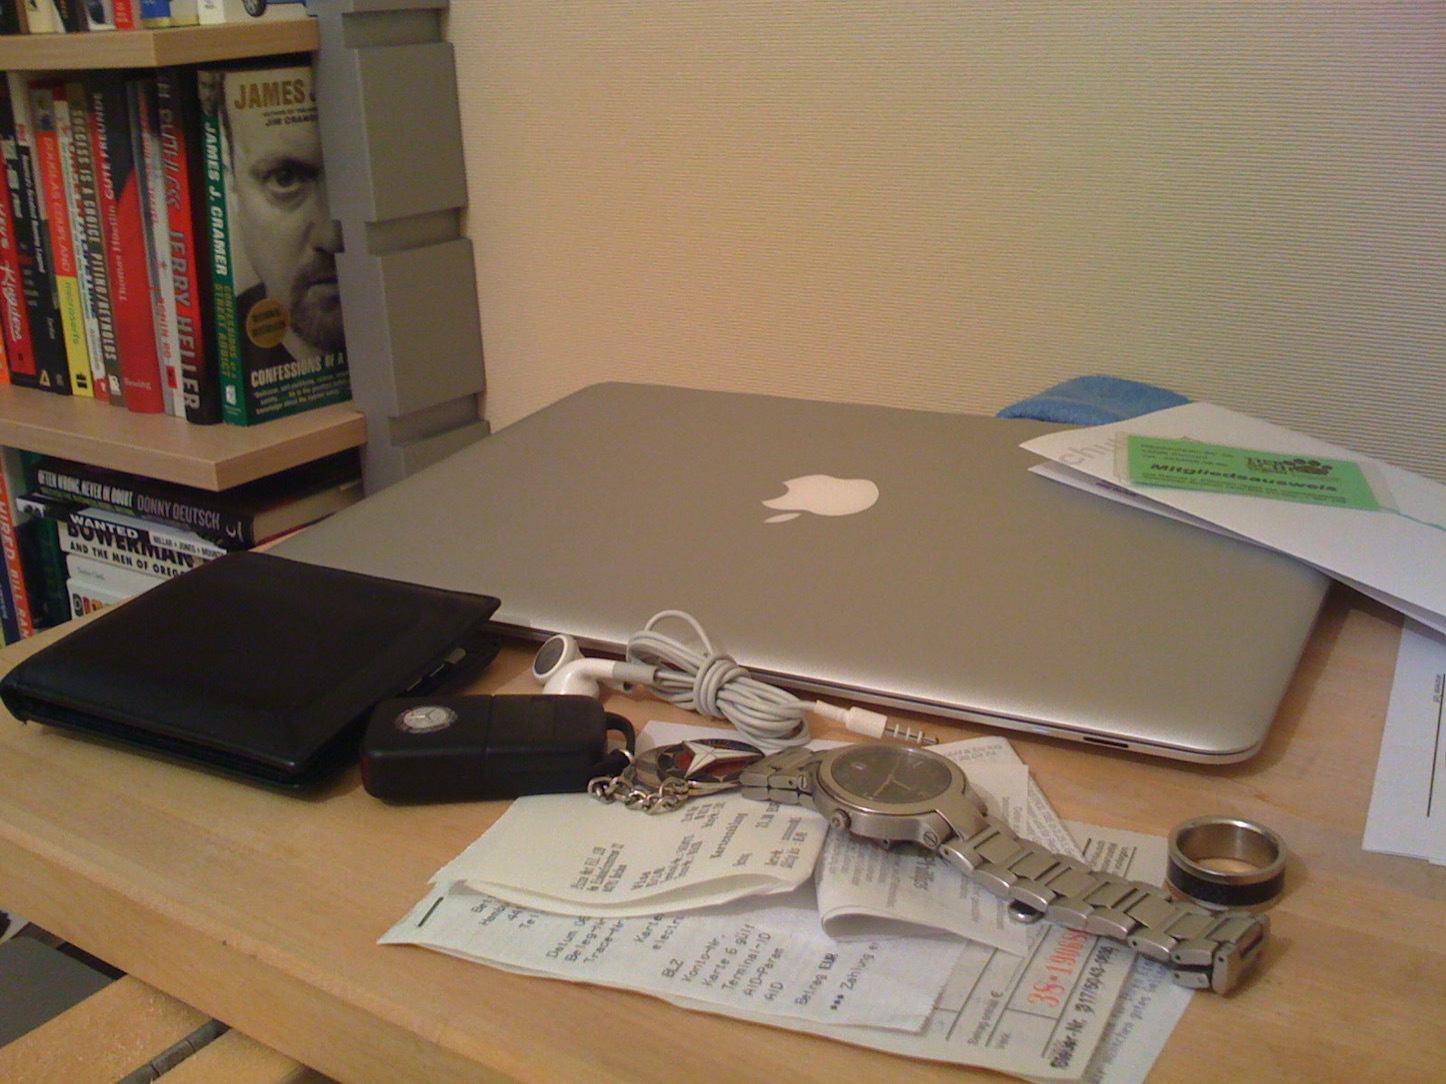 Macbook air on desk